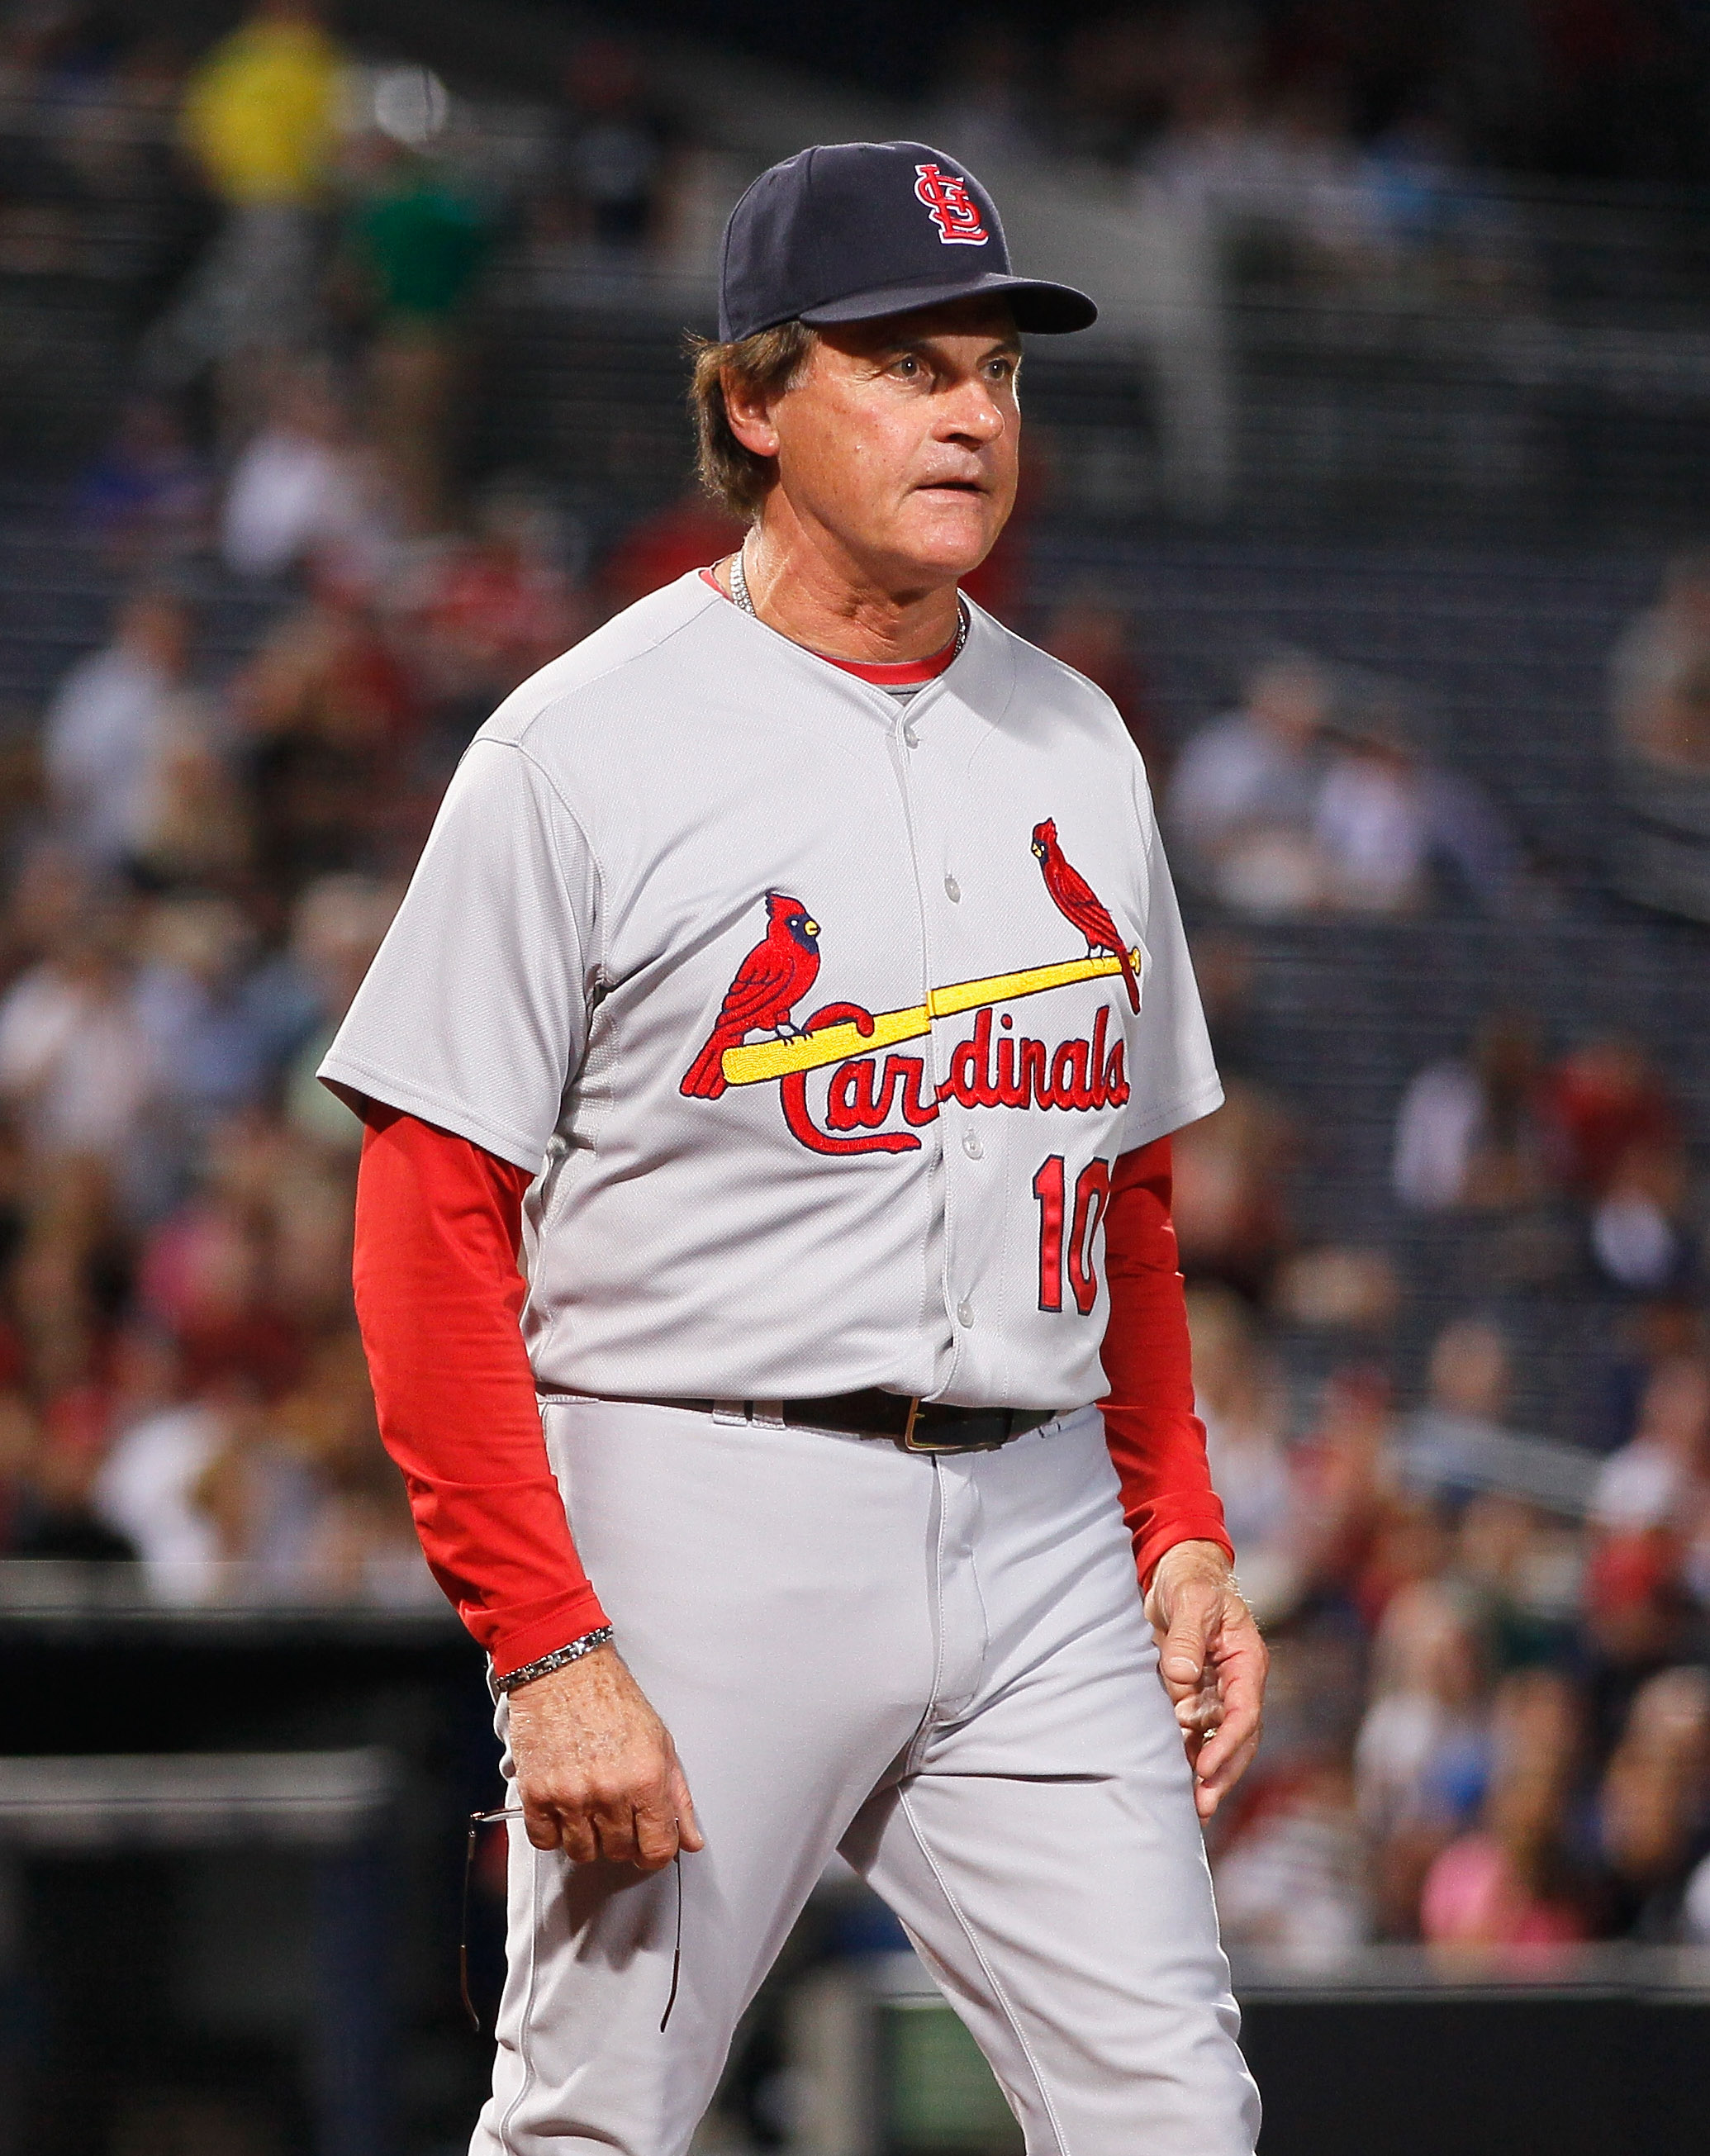 ATLANTA - SEPTEMBER 09:  Manager Tony LaRussa of the St. Louis Cardinals against the Atlanta Braves at Turner Field on September 9, 2010 in Atlanta, Georgia.  (Photo by Kevin C. Cox/Getty Images)